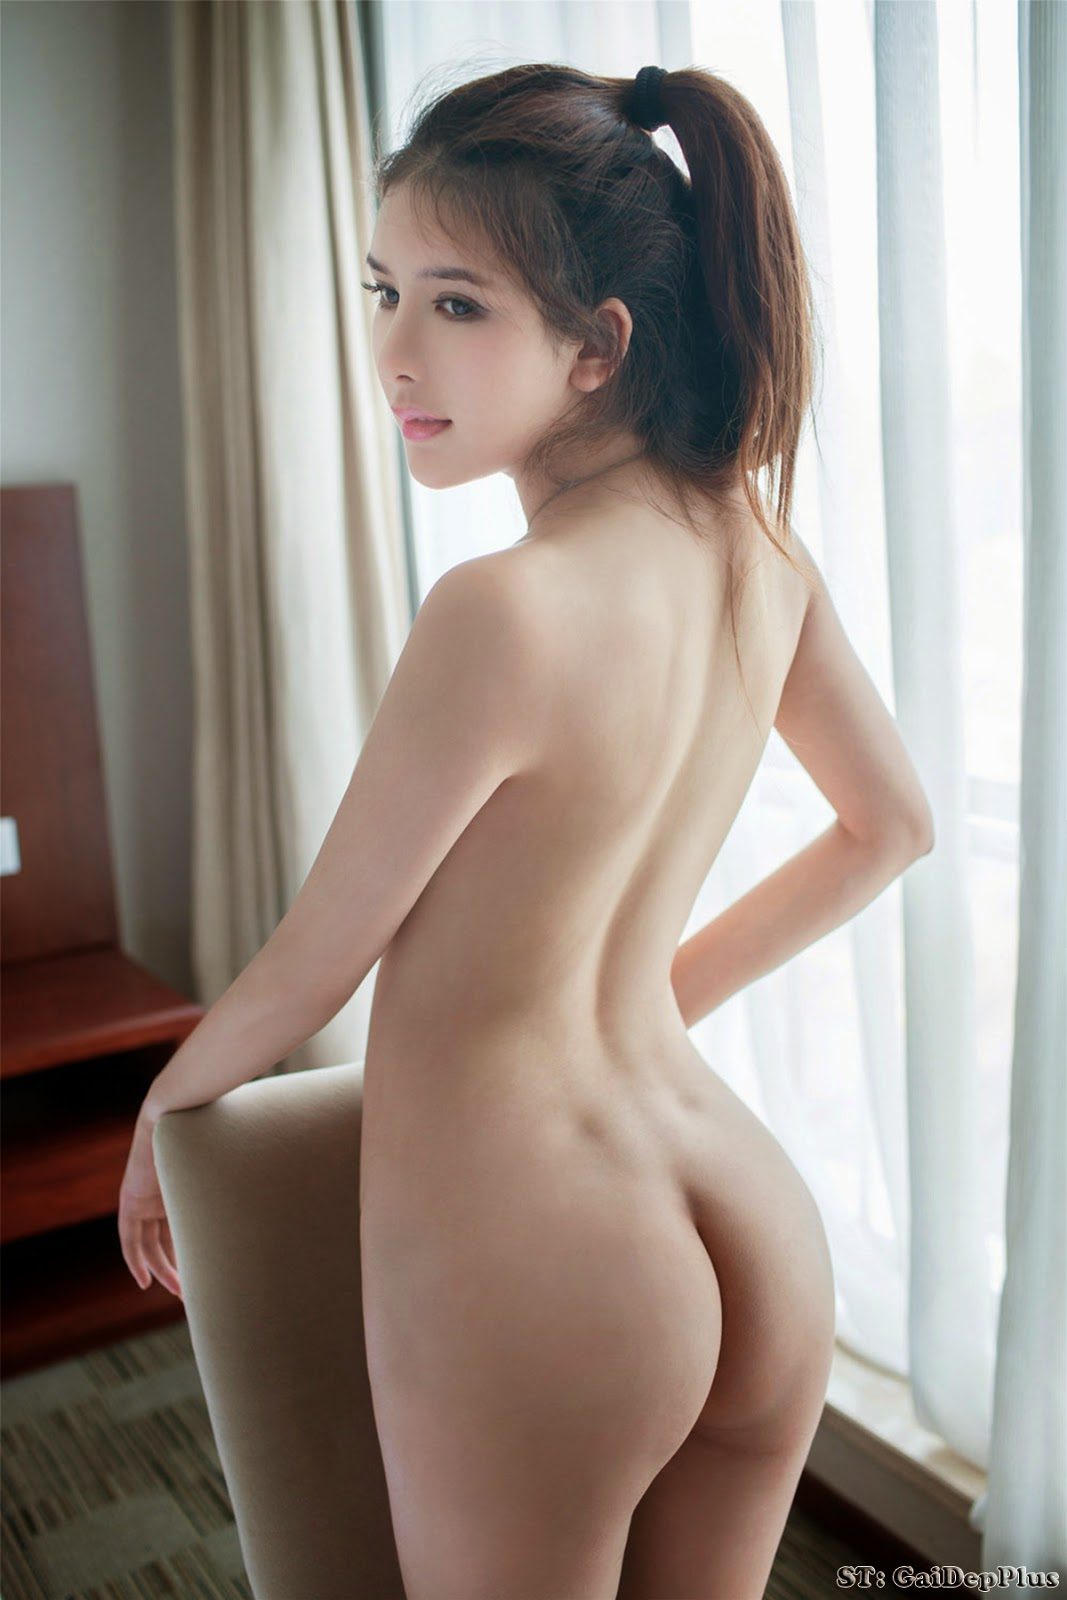 Naked Of Singapore Men A Woman Hot 49